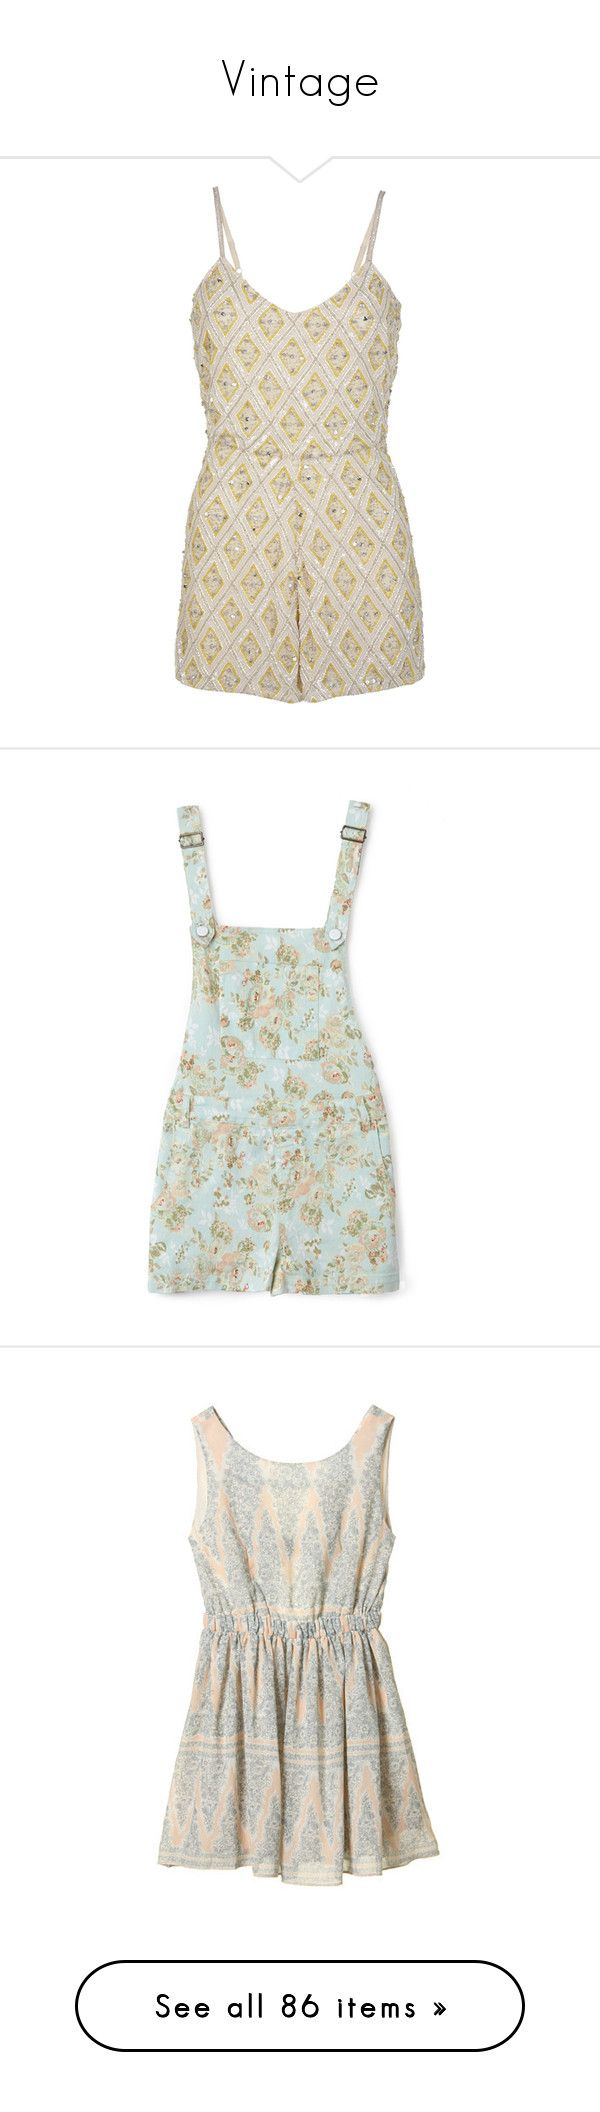 """Vintage"" by daisythings ❤ liked on Polyvore featuring jumpsuits, rompers, playsuits, petite, yellow, playsuit jumpsuit, embellished jumpsuit, yellow jumpsuit, yellow jump suit and playsuit romper"